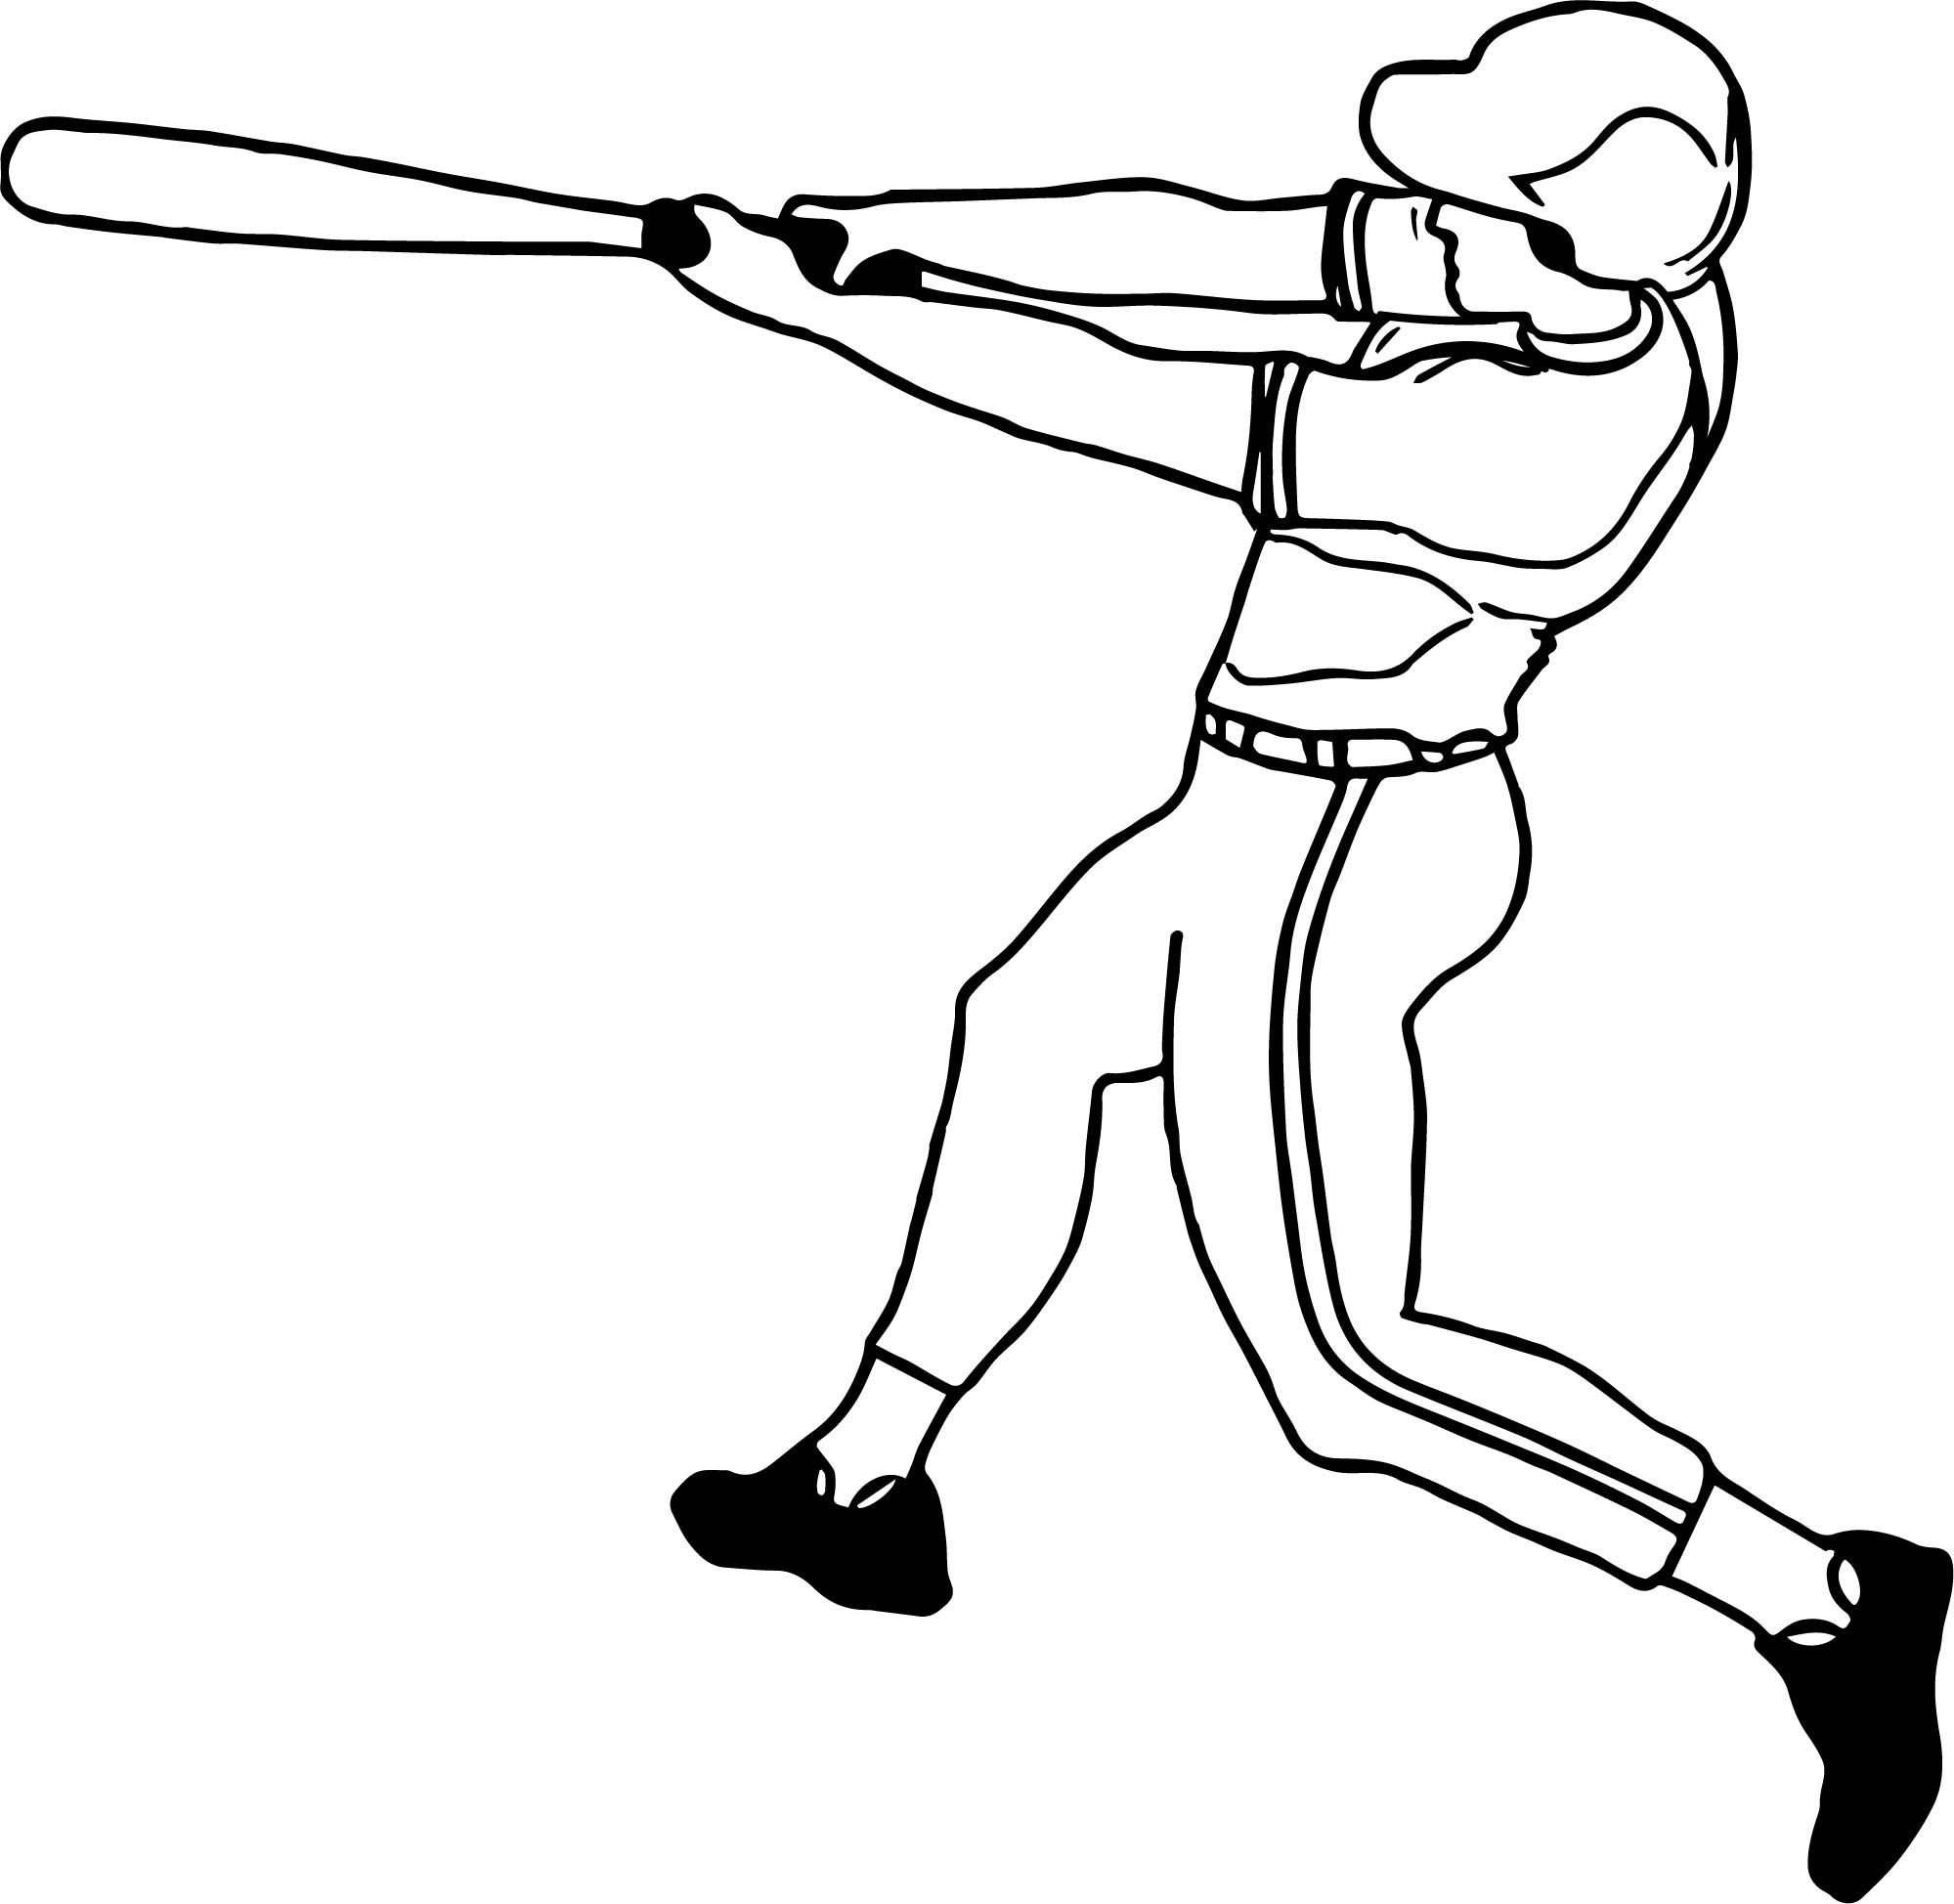 Baseball Kick Ball Playing Baseball Coloring Page Wecoloringpage Com